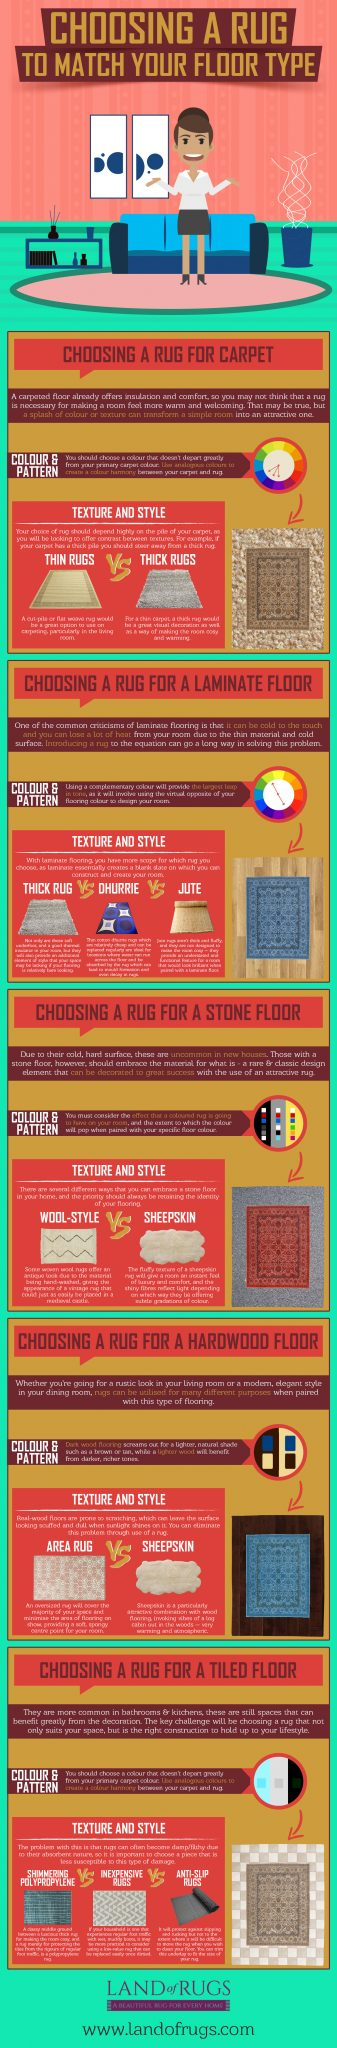 Choosing A Rug To Match Your Floor Type